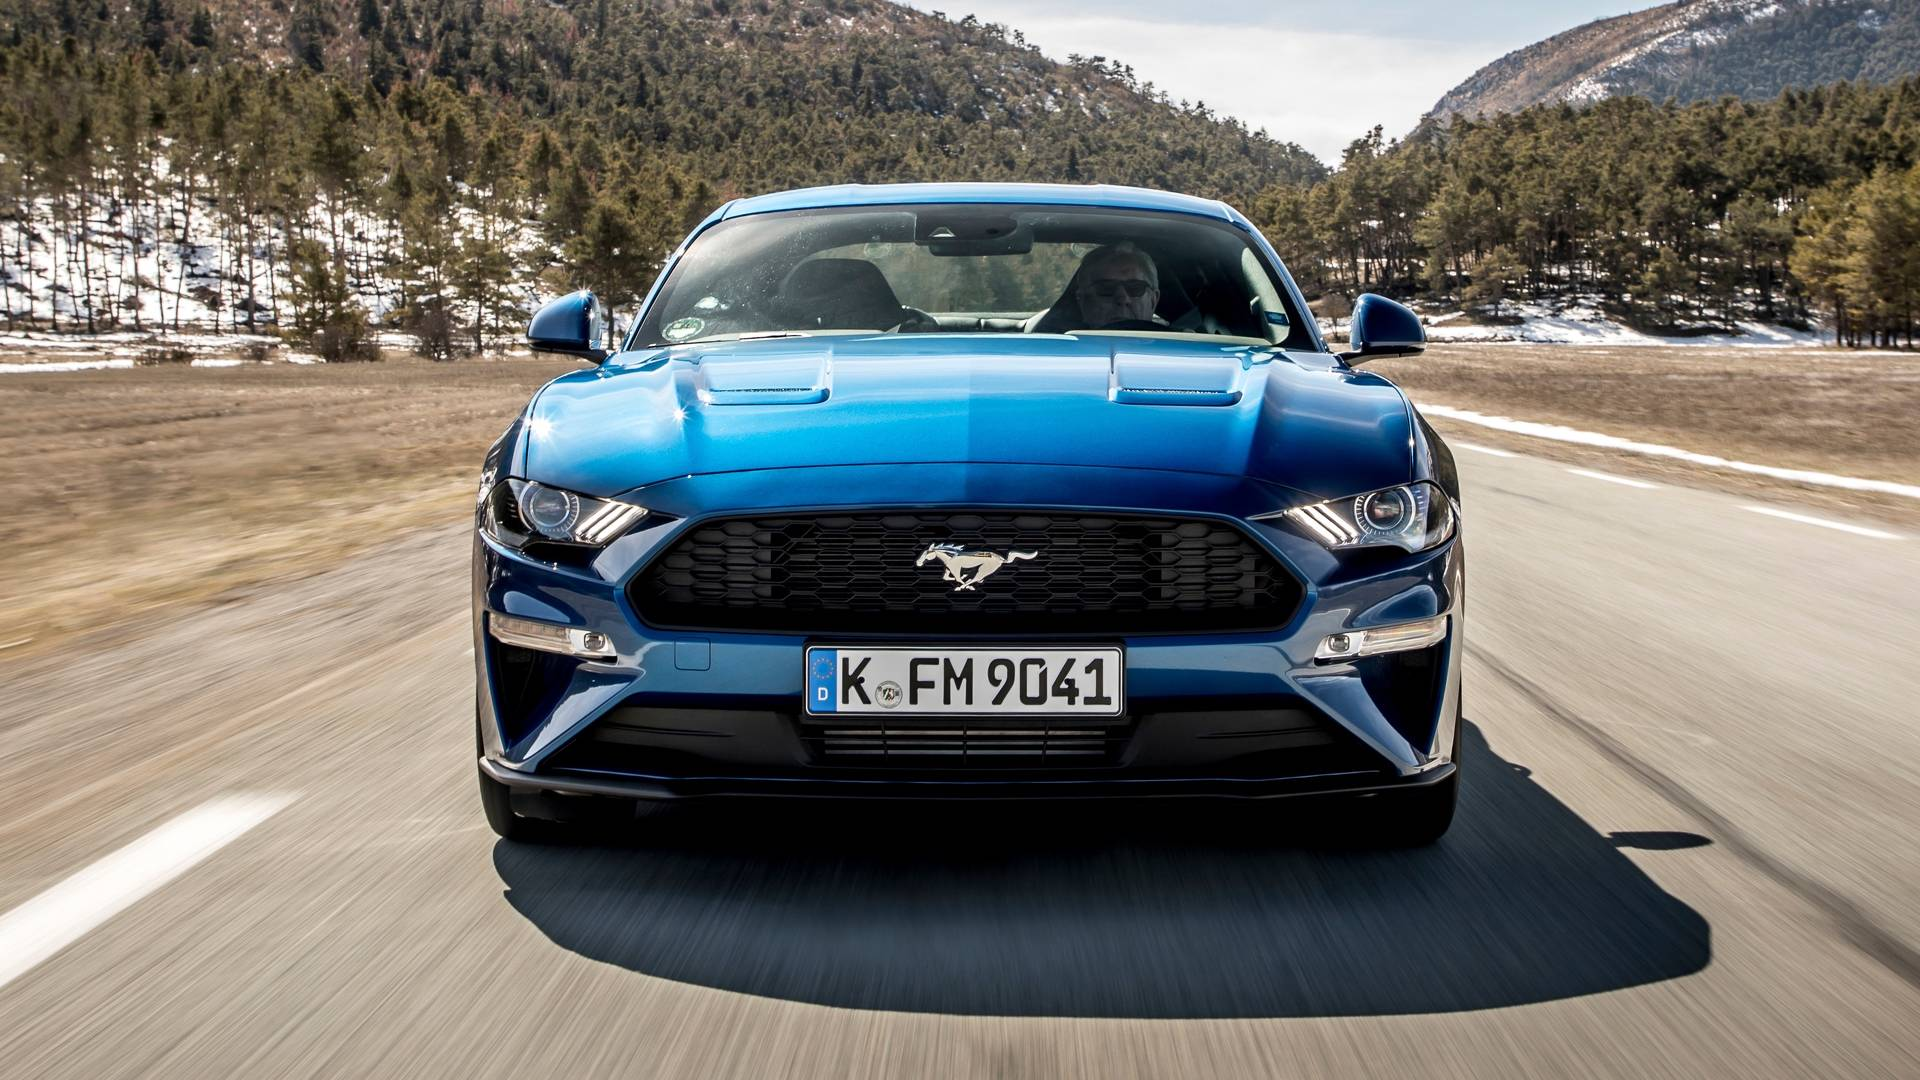 2018 ford mustang review we love it youll love it everyone will love it